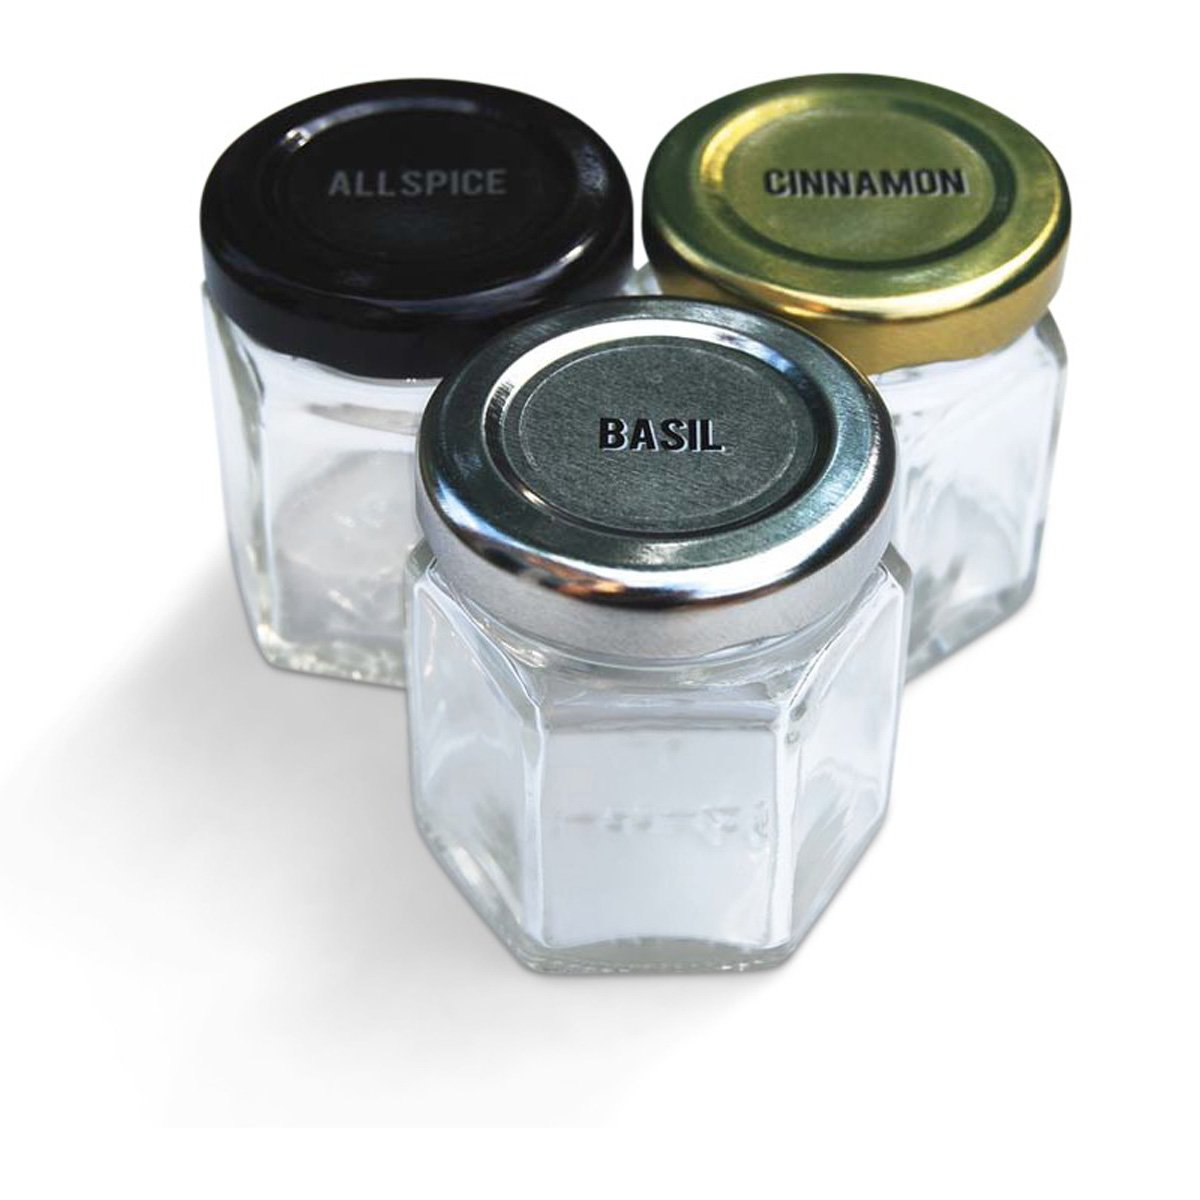 Gneiss spice small empty magnetic spice jars create a diy hanging spice rack on your fridge includes hexagon glass jars magnetic lids spice labels